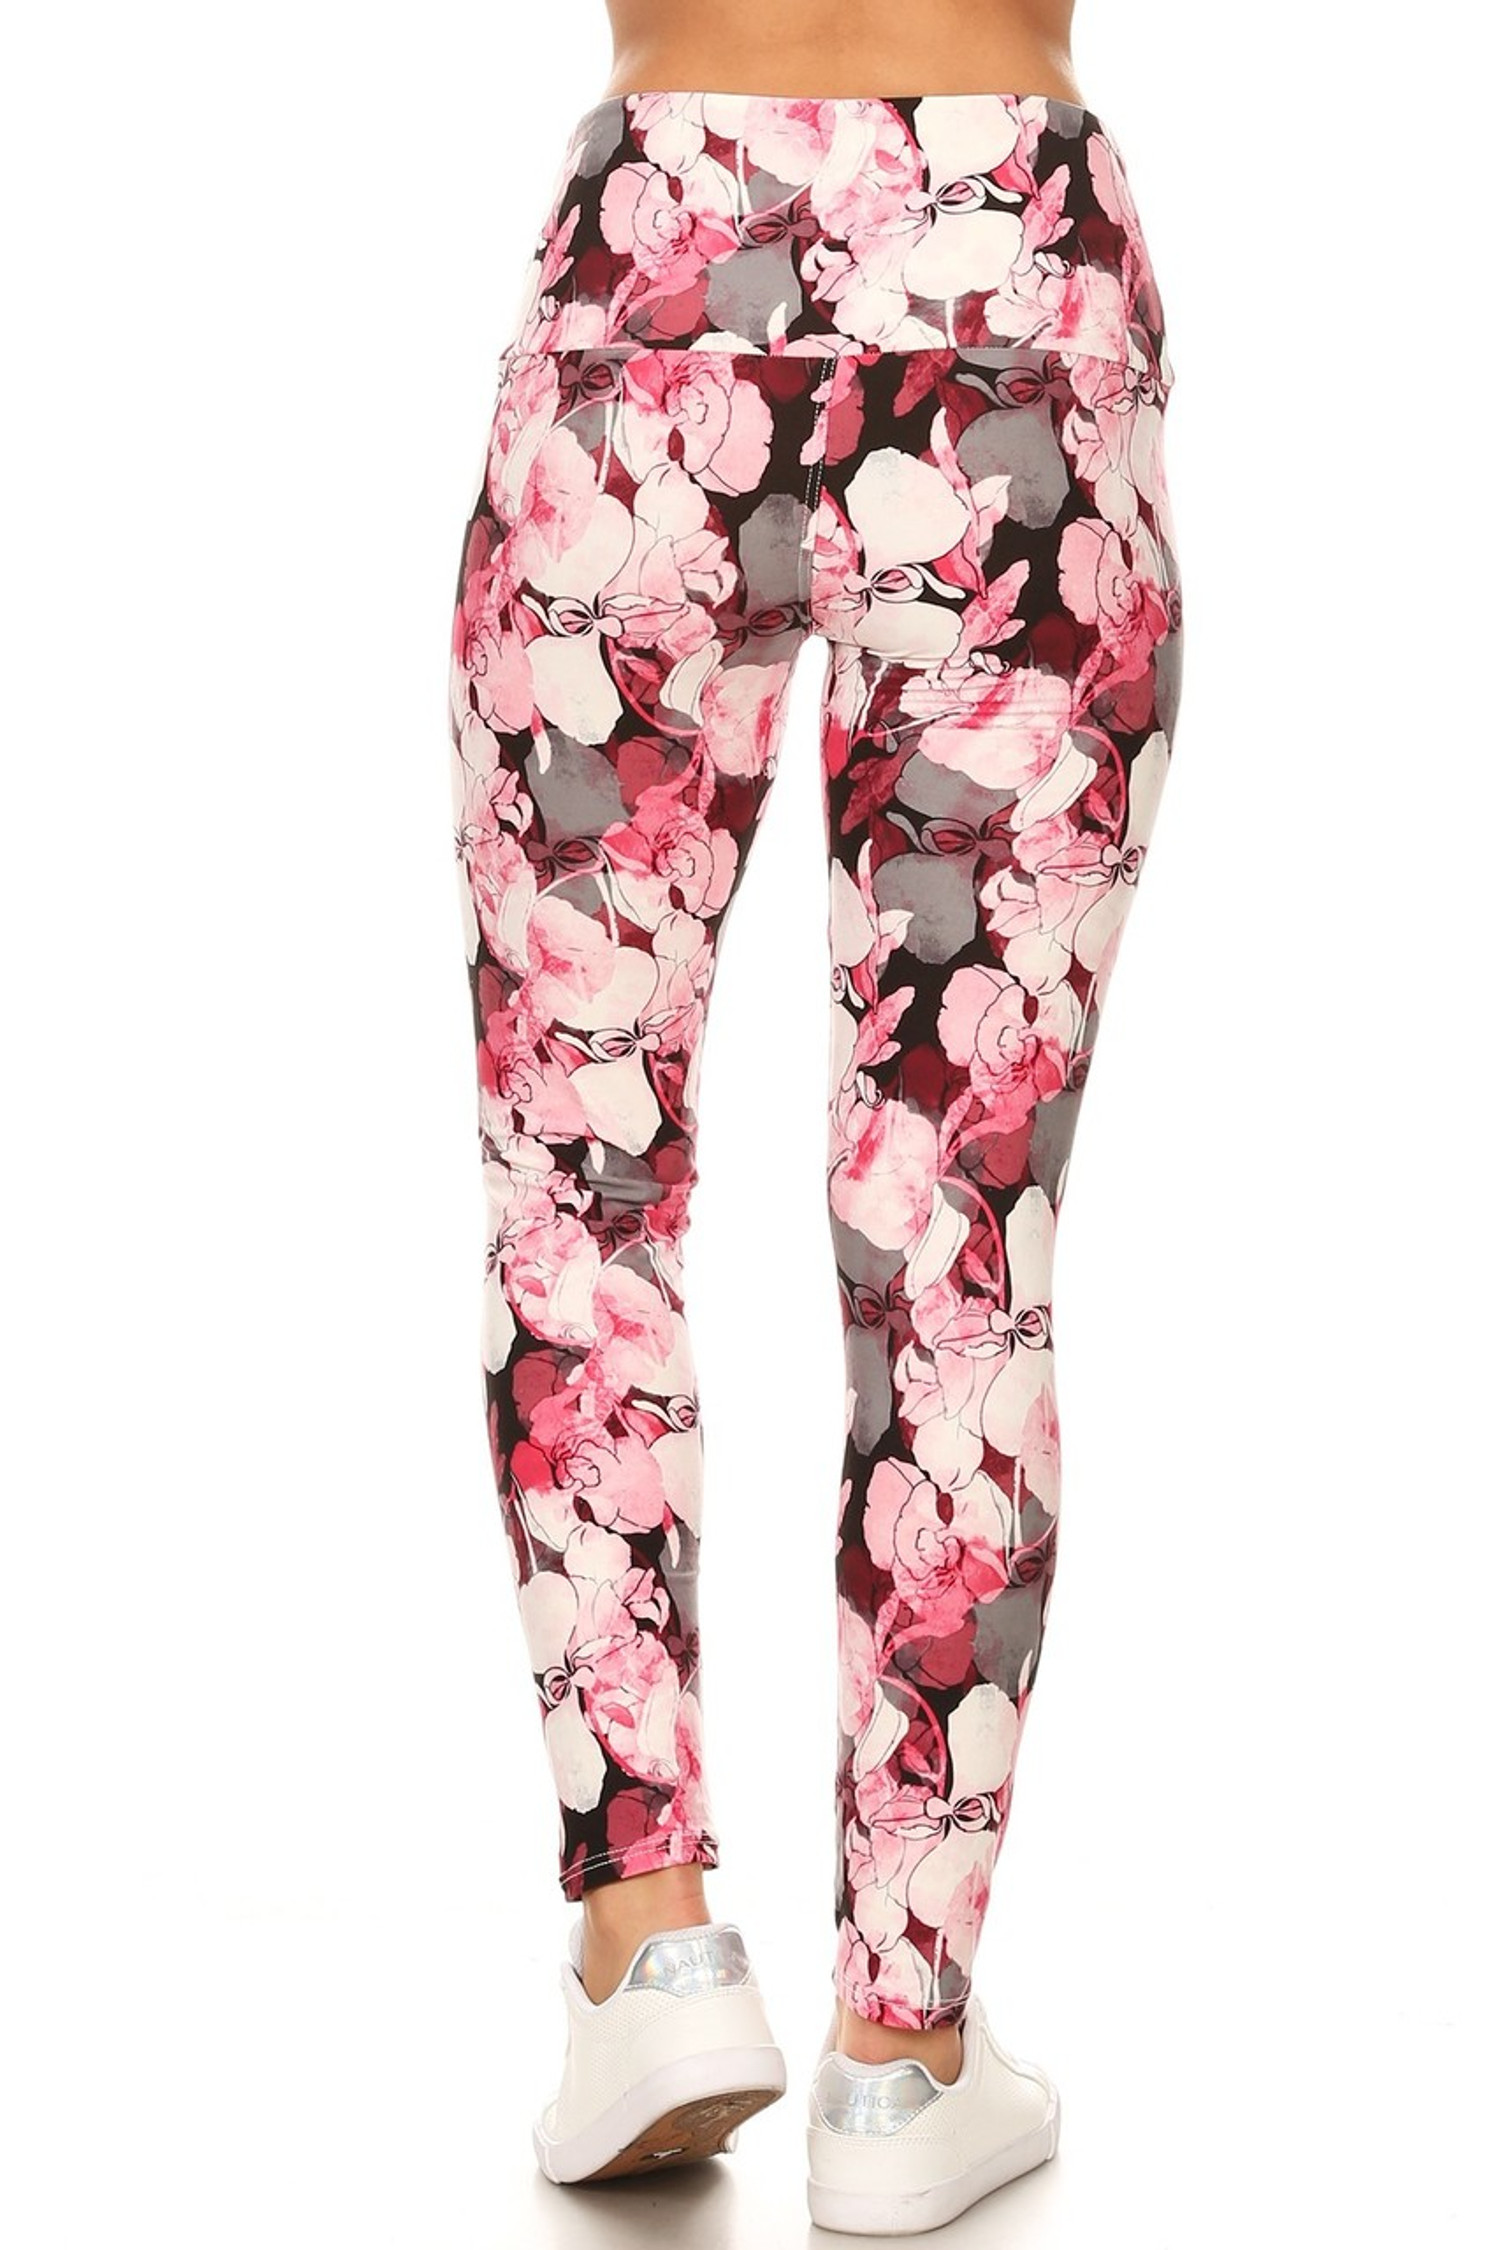 Brushed Lavish Raspberry Rose High Waist Leggings